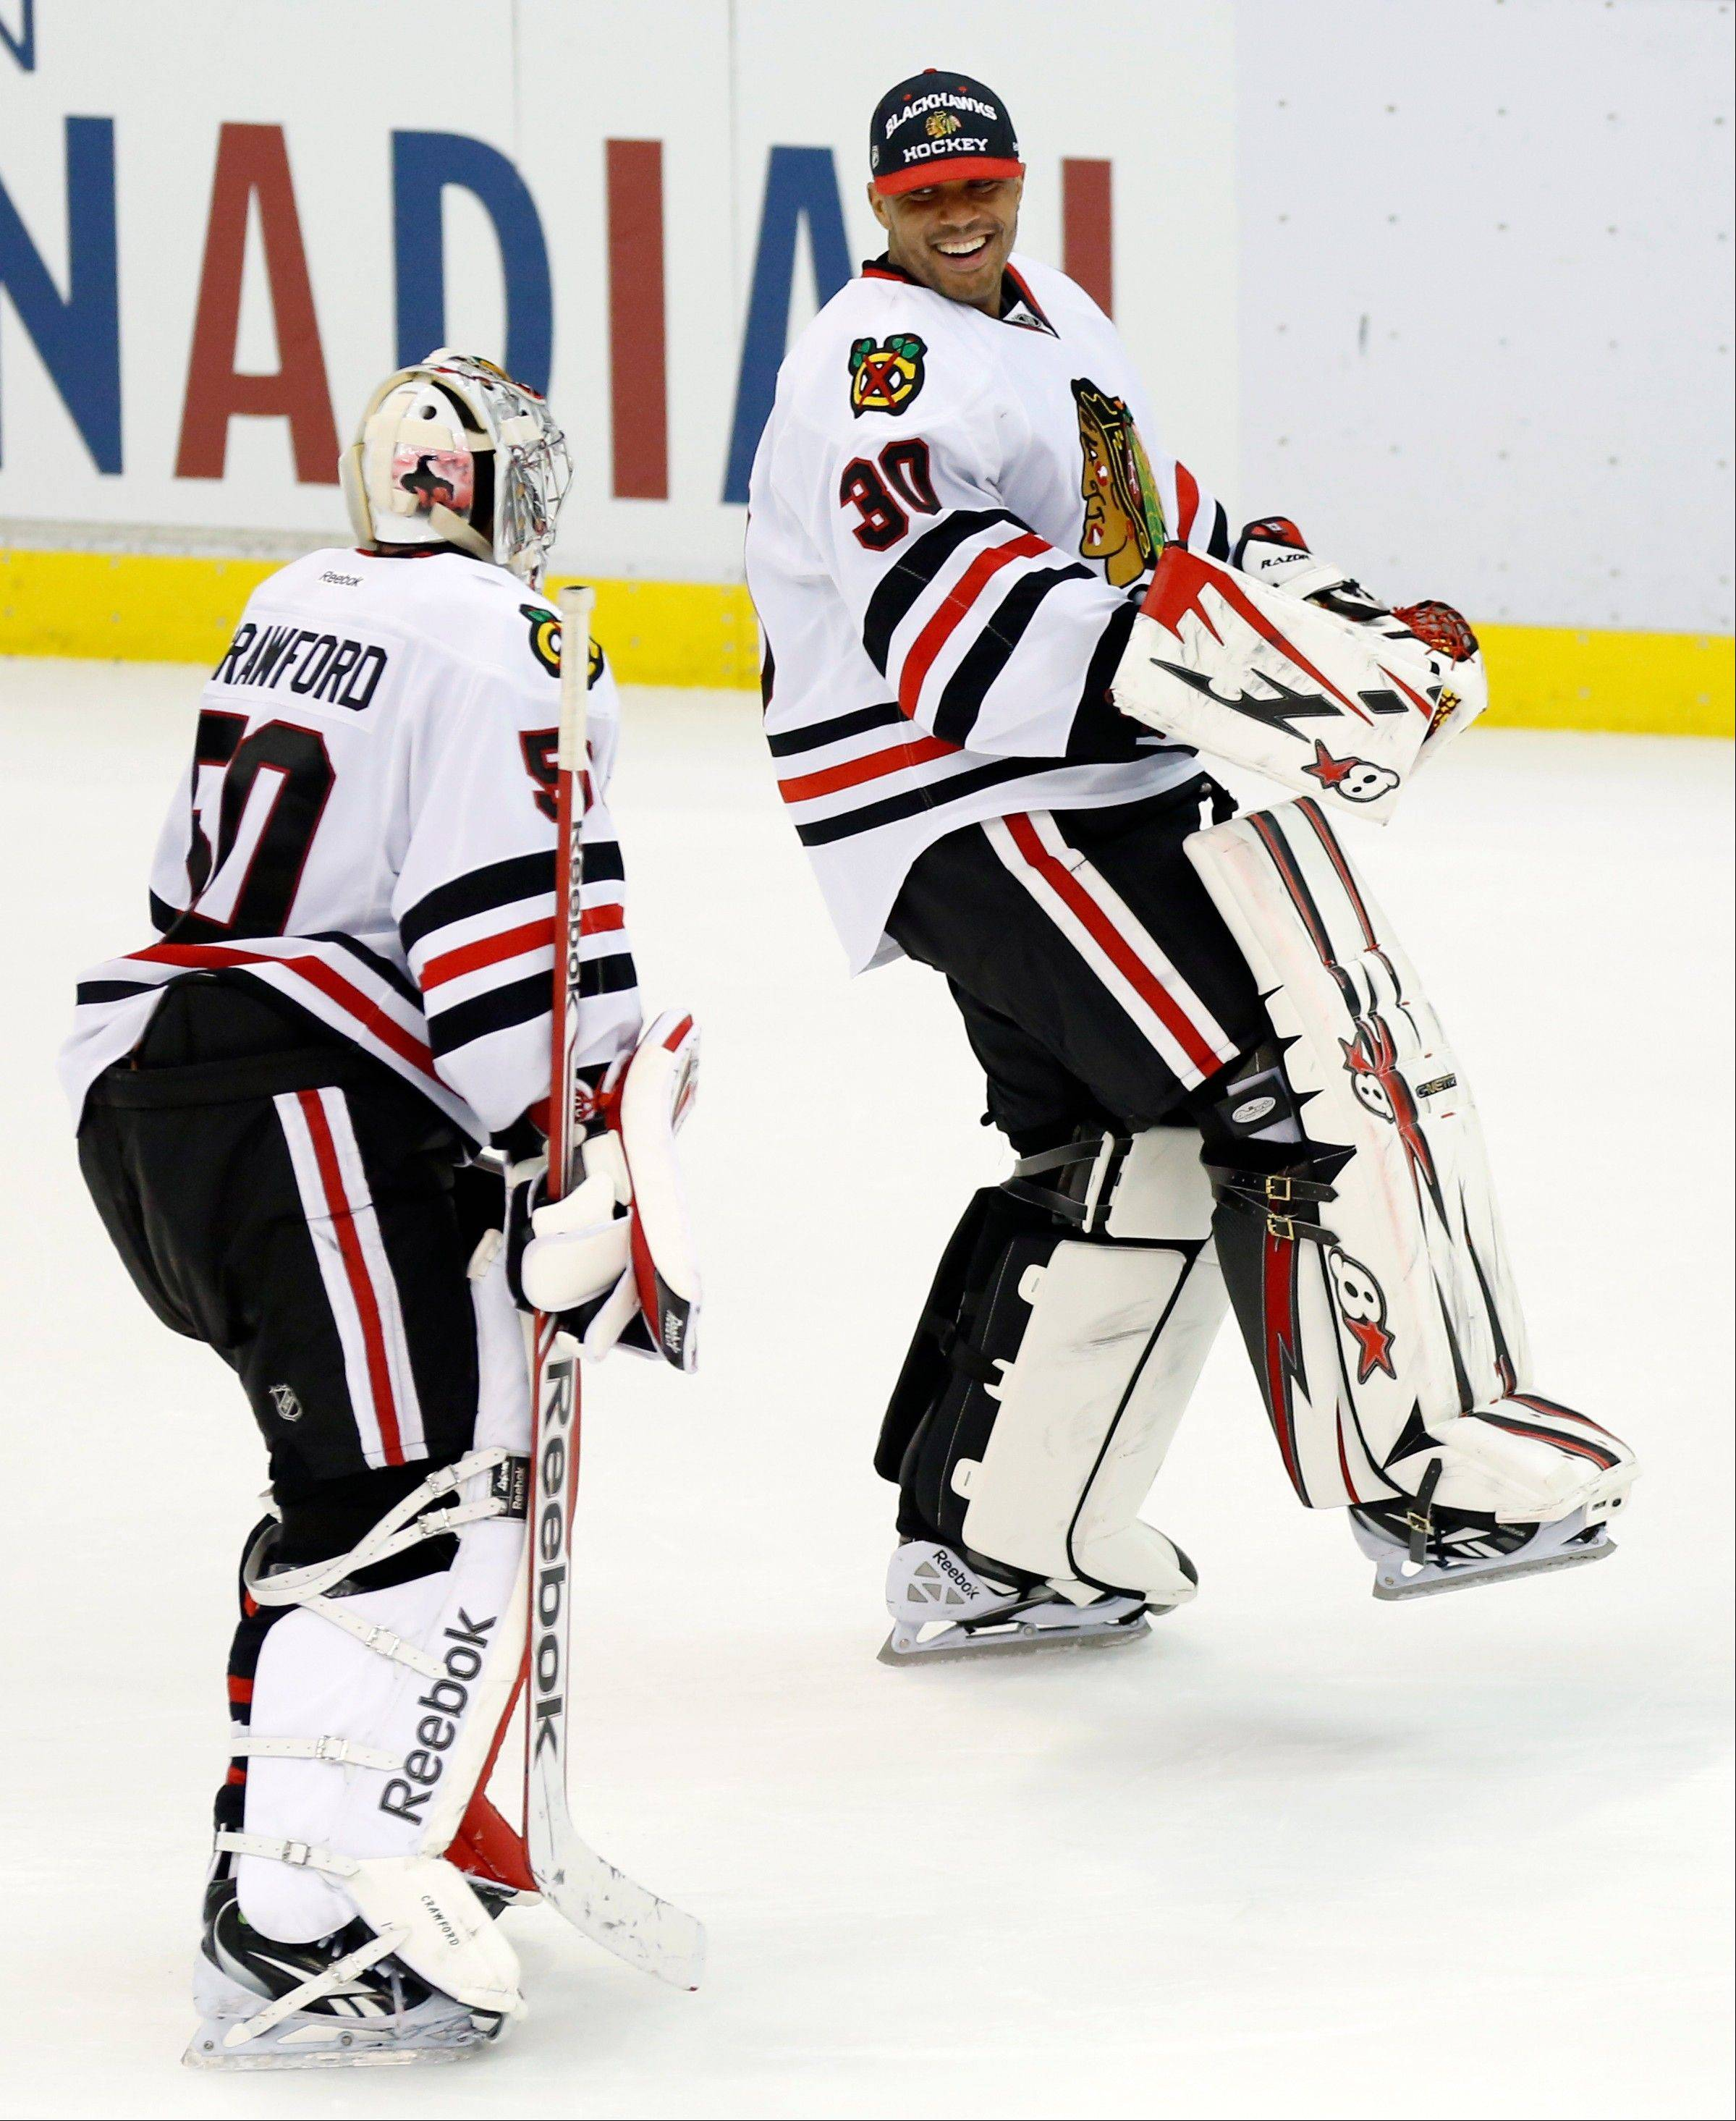 Blackhawks goalies Ray Emery, right, and Corey Crawford have played a key role in the team's record start.